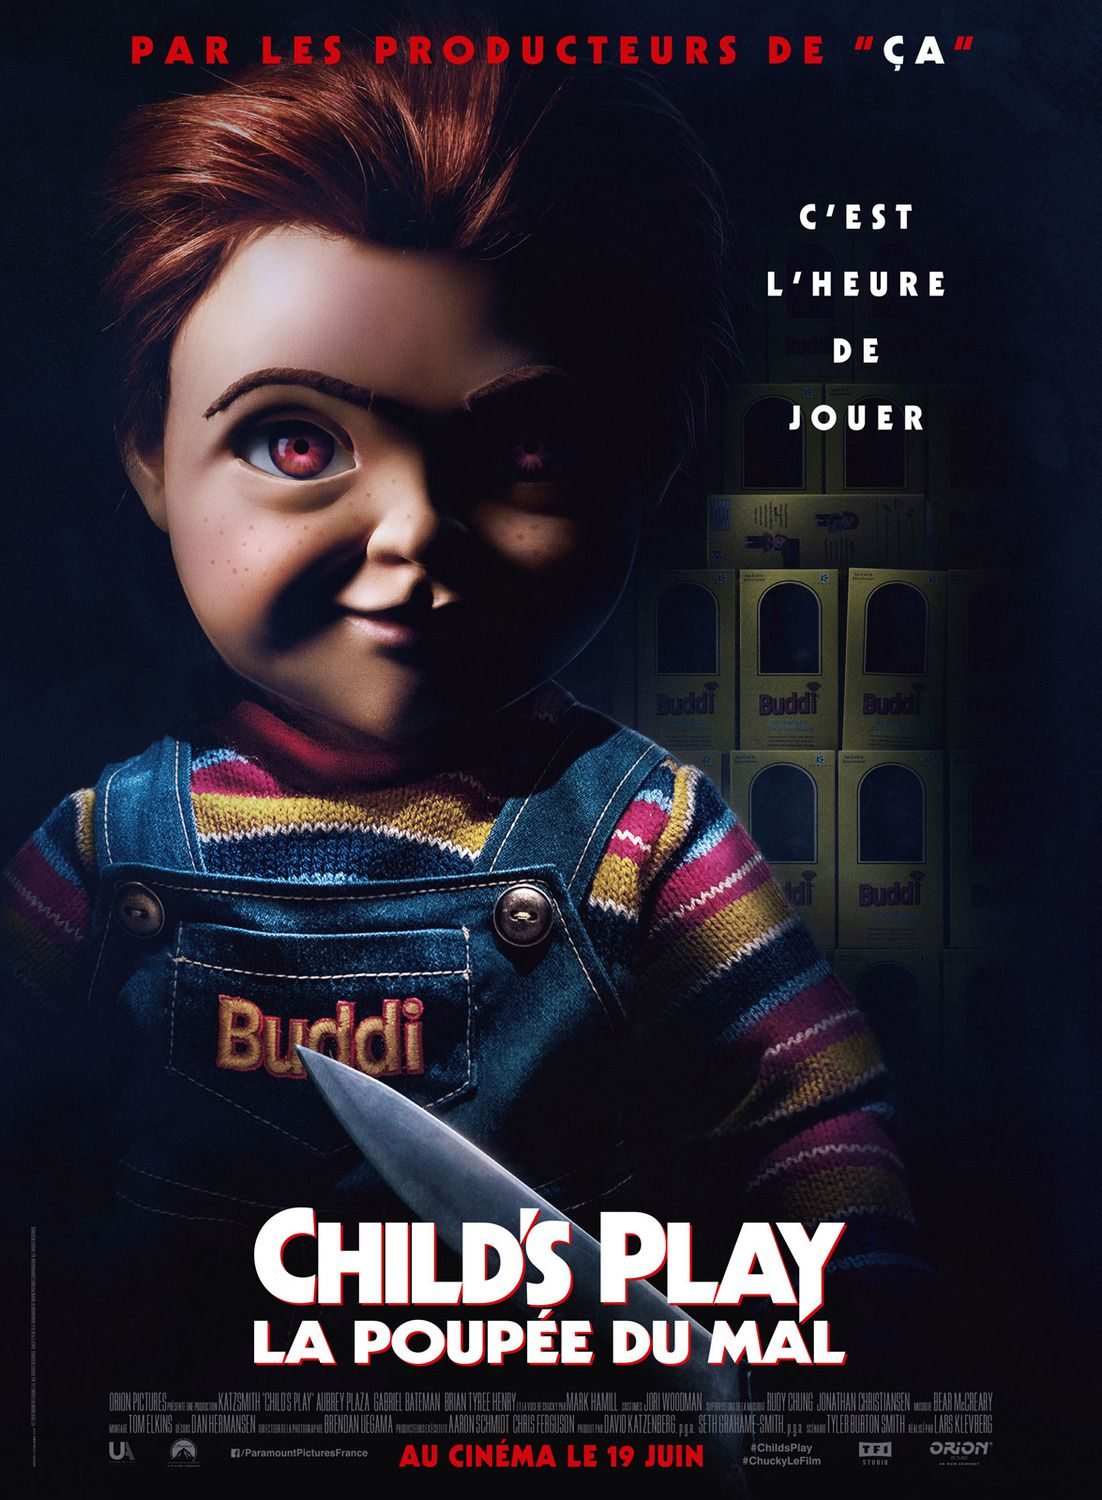 Childs Play 2019 horror with Aubrey Plaza - scary doll